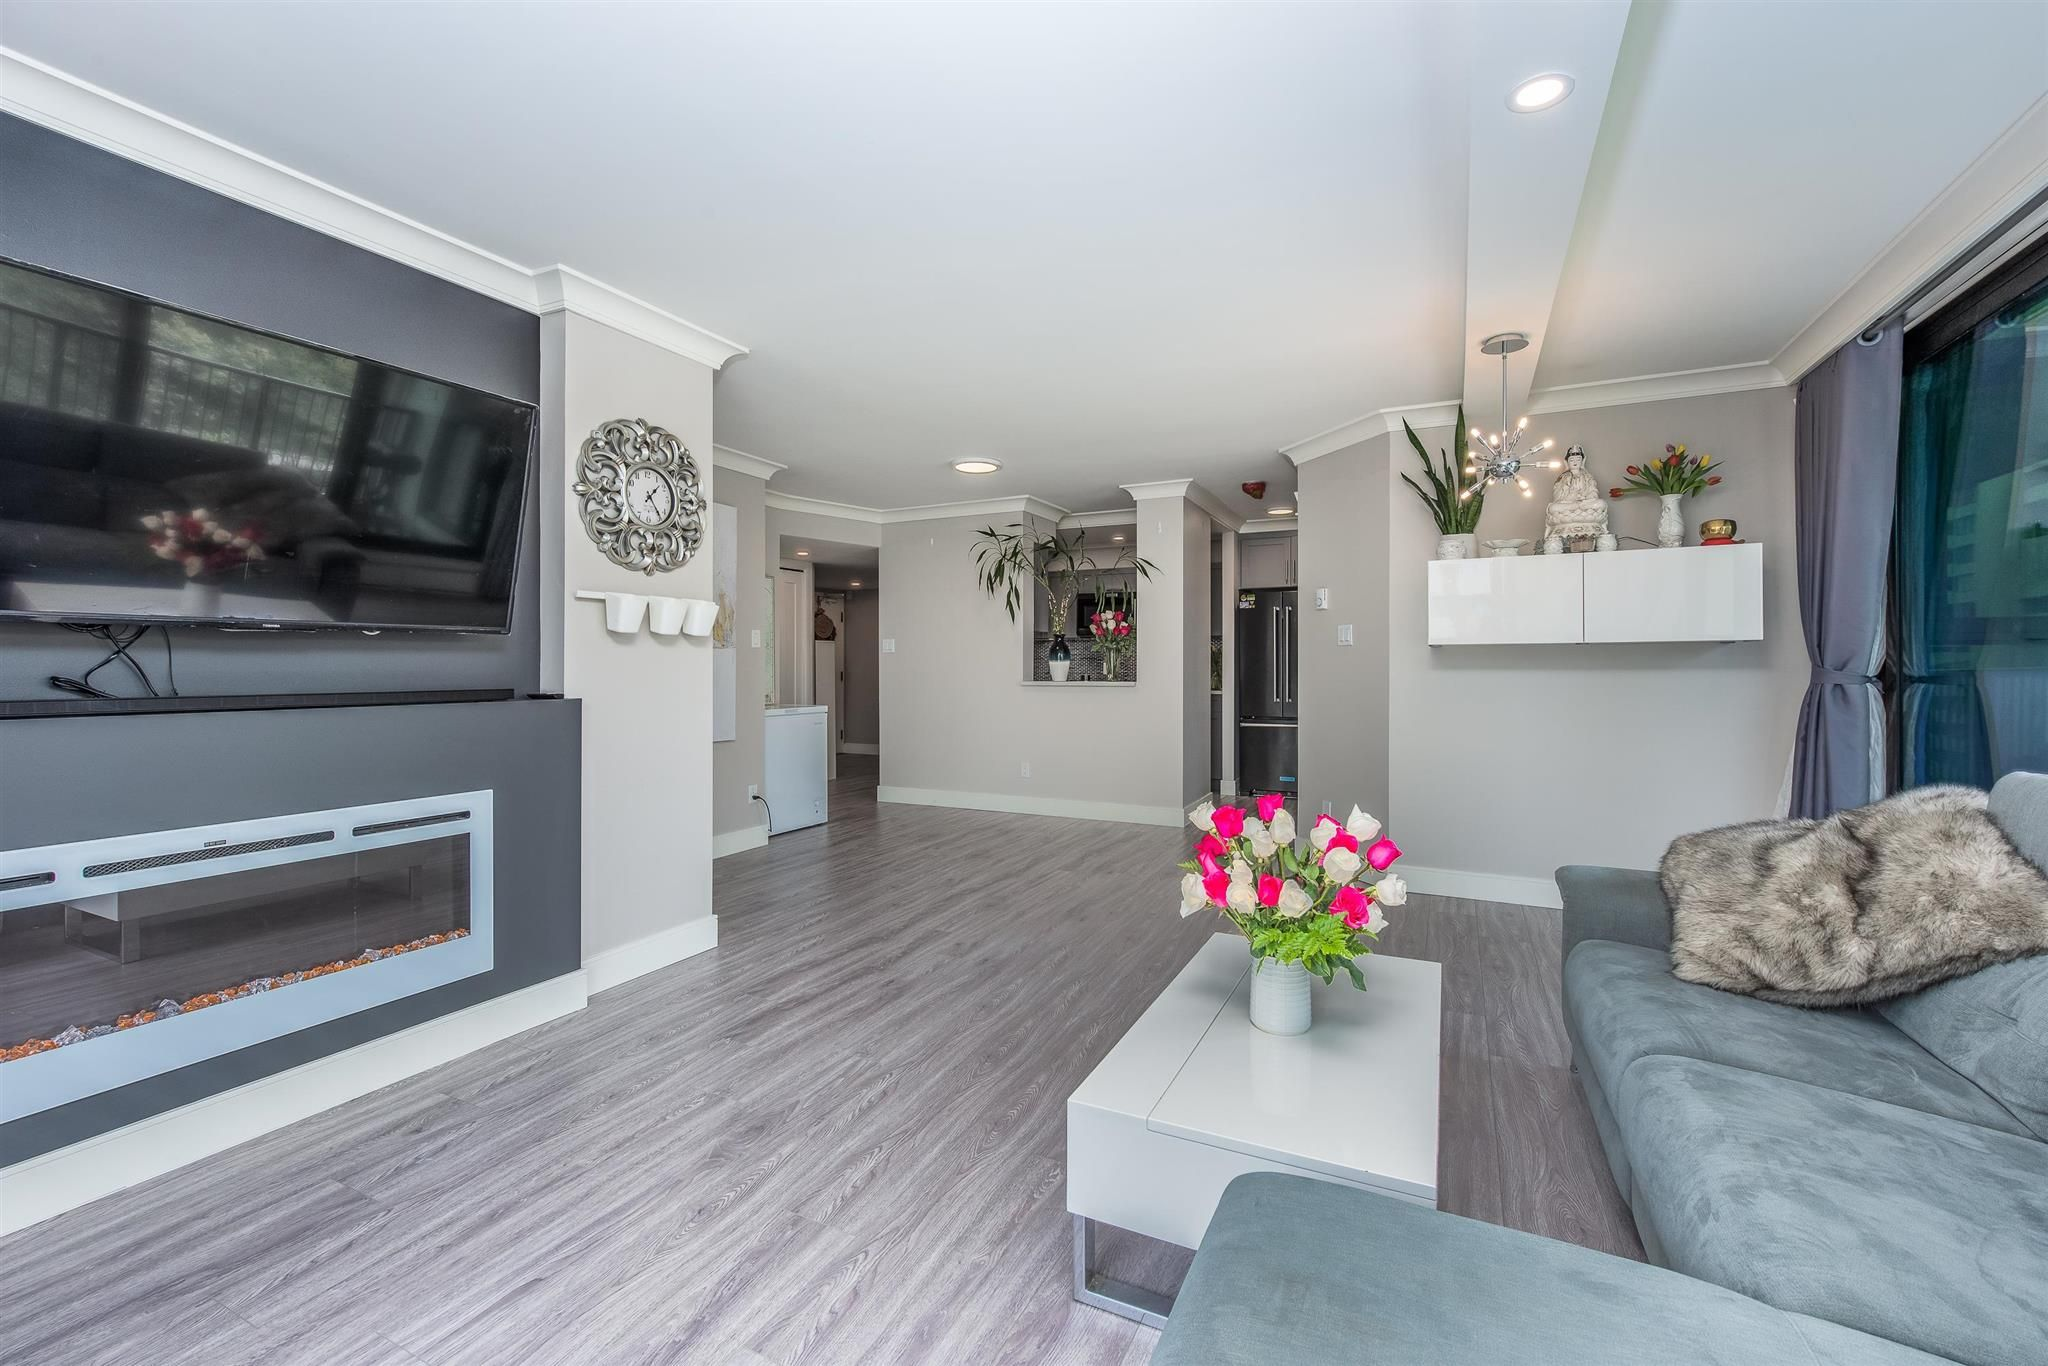 Main Photo: 708 4165 MAYWOOD Street in Burnaby: Metrotown Condo for sale (Burnaby South)  : MLS®# R2601570